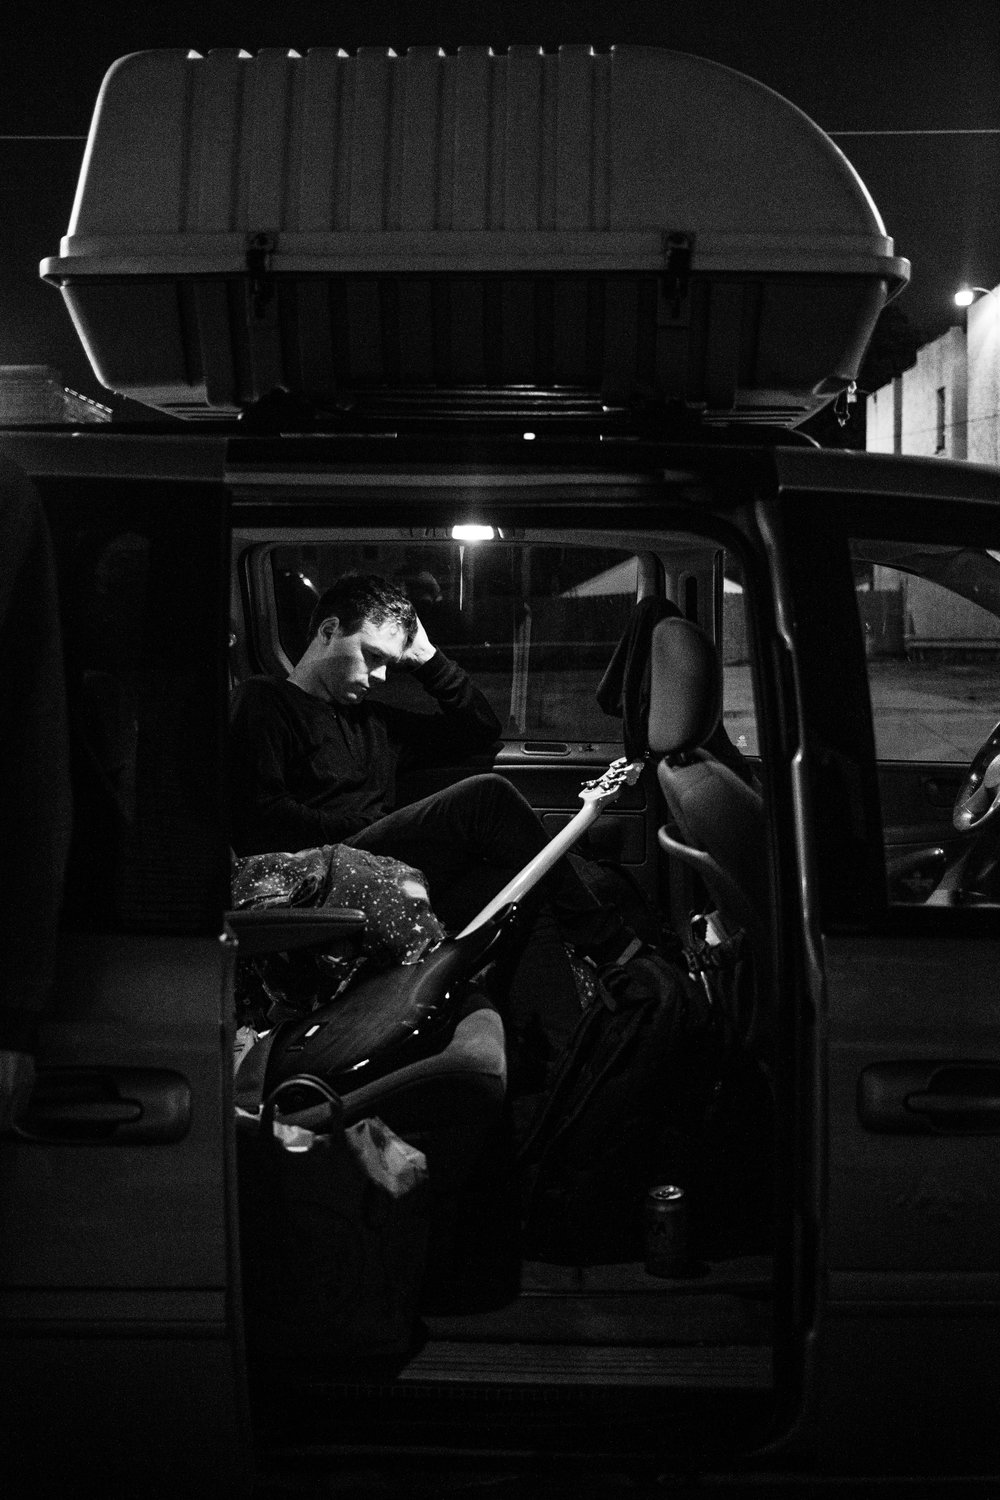 Loren in the van before the show.